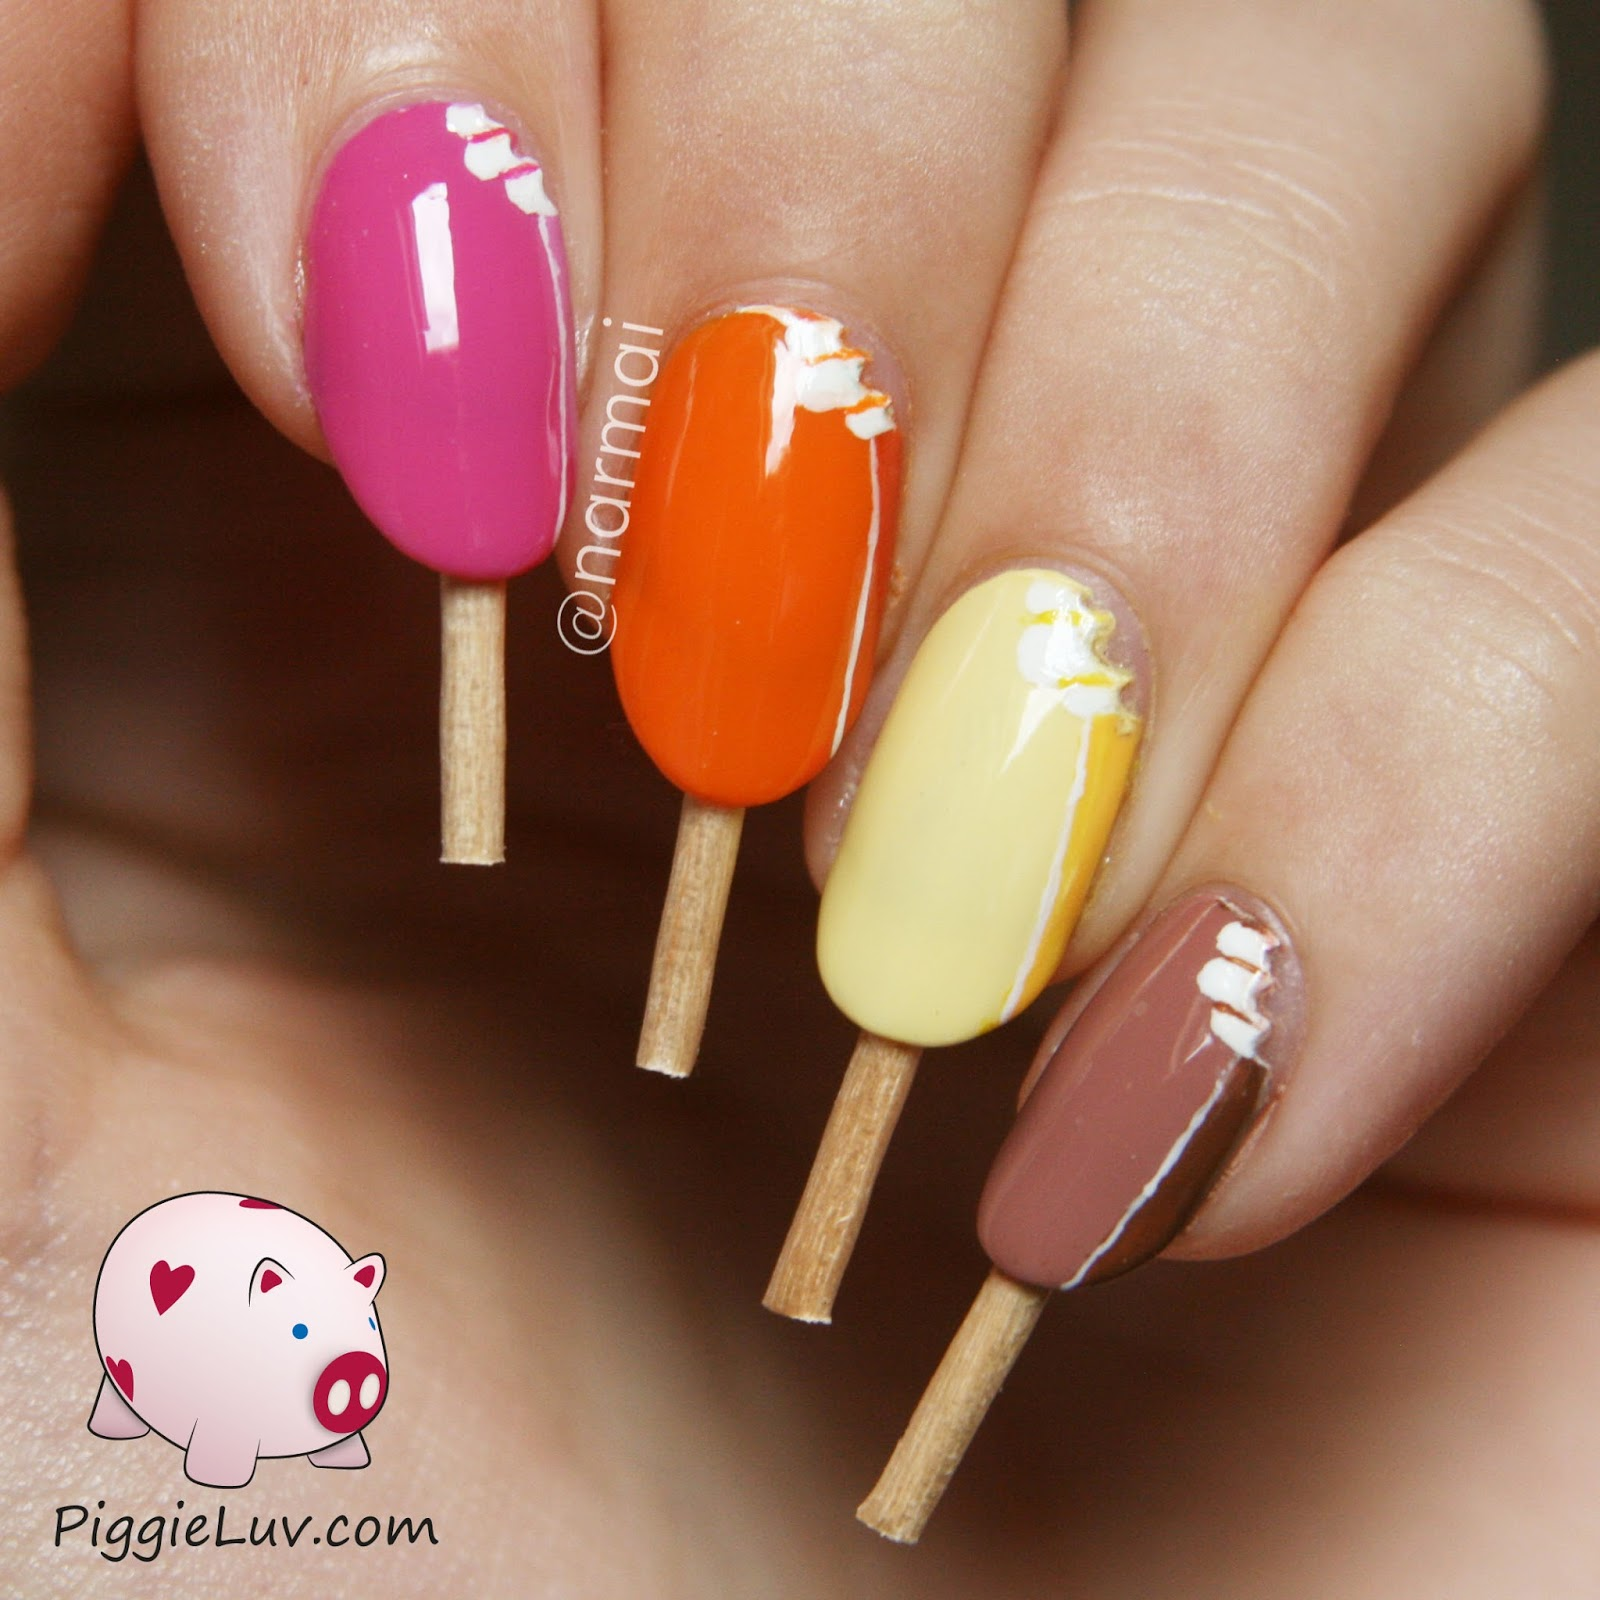 PiggieLuv: Magnum ice cream nail art with video tutorial!